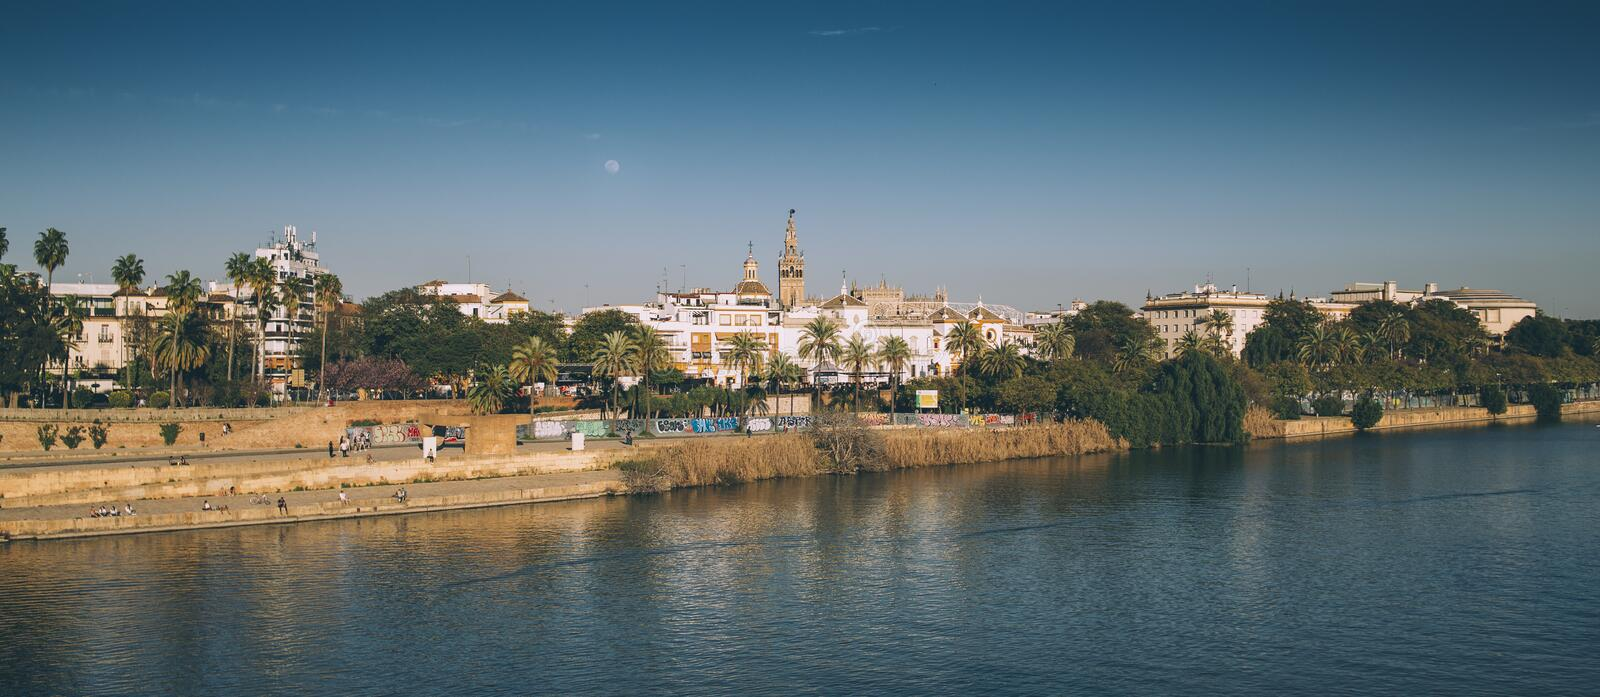 From the Triana bridge, Sevilla. Views of the city of Seville from the Triana Bridge, Guadalquivir river royalty free stock images